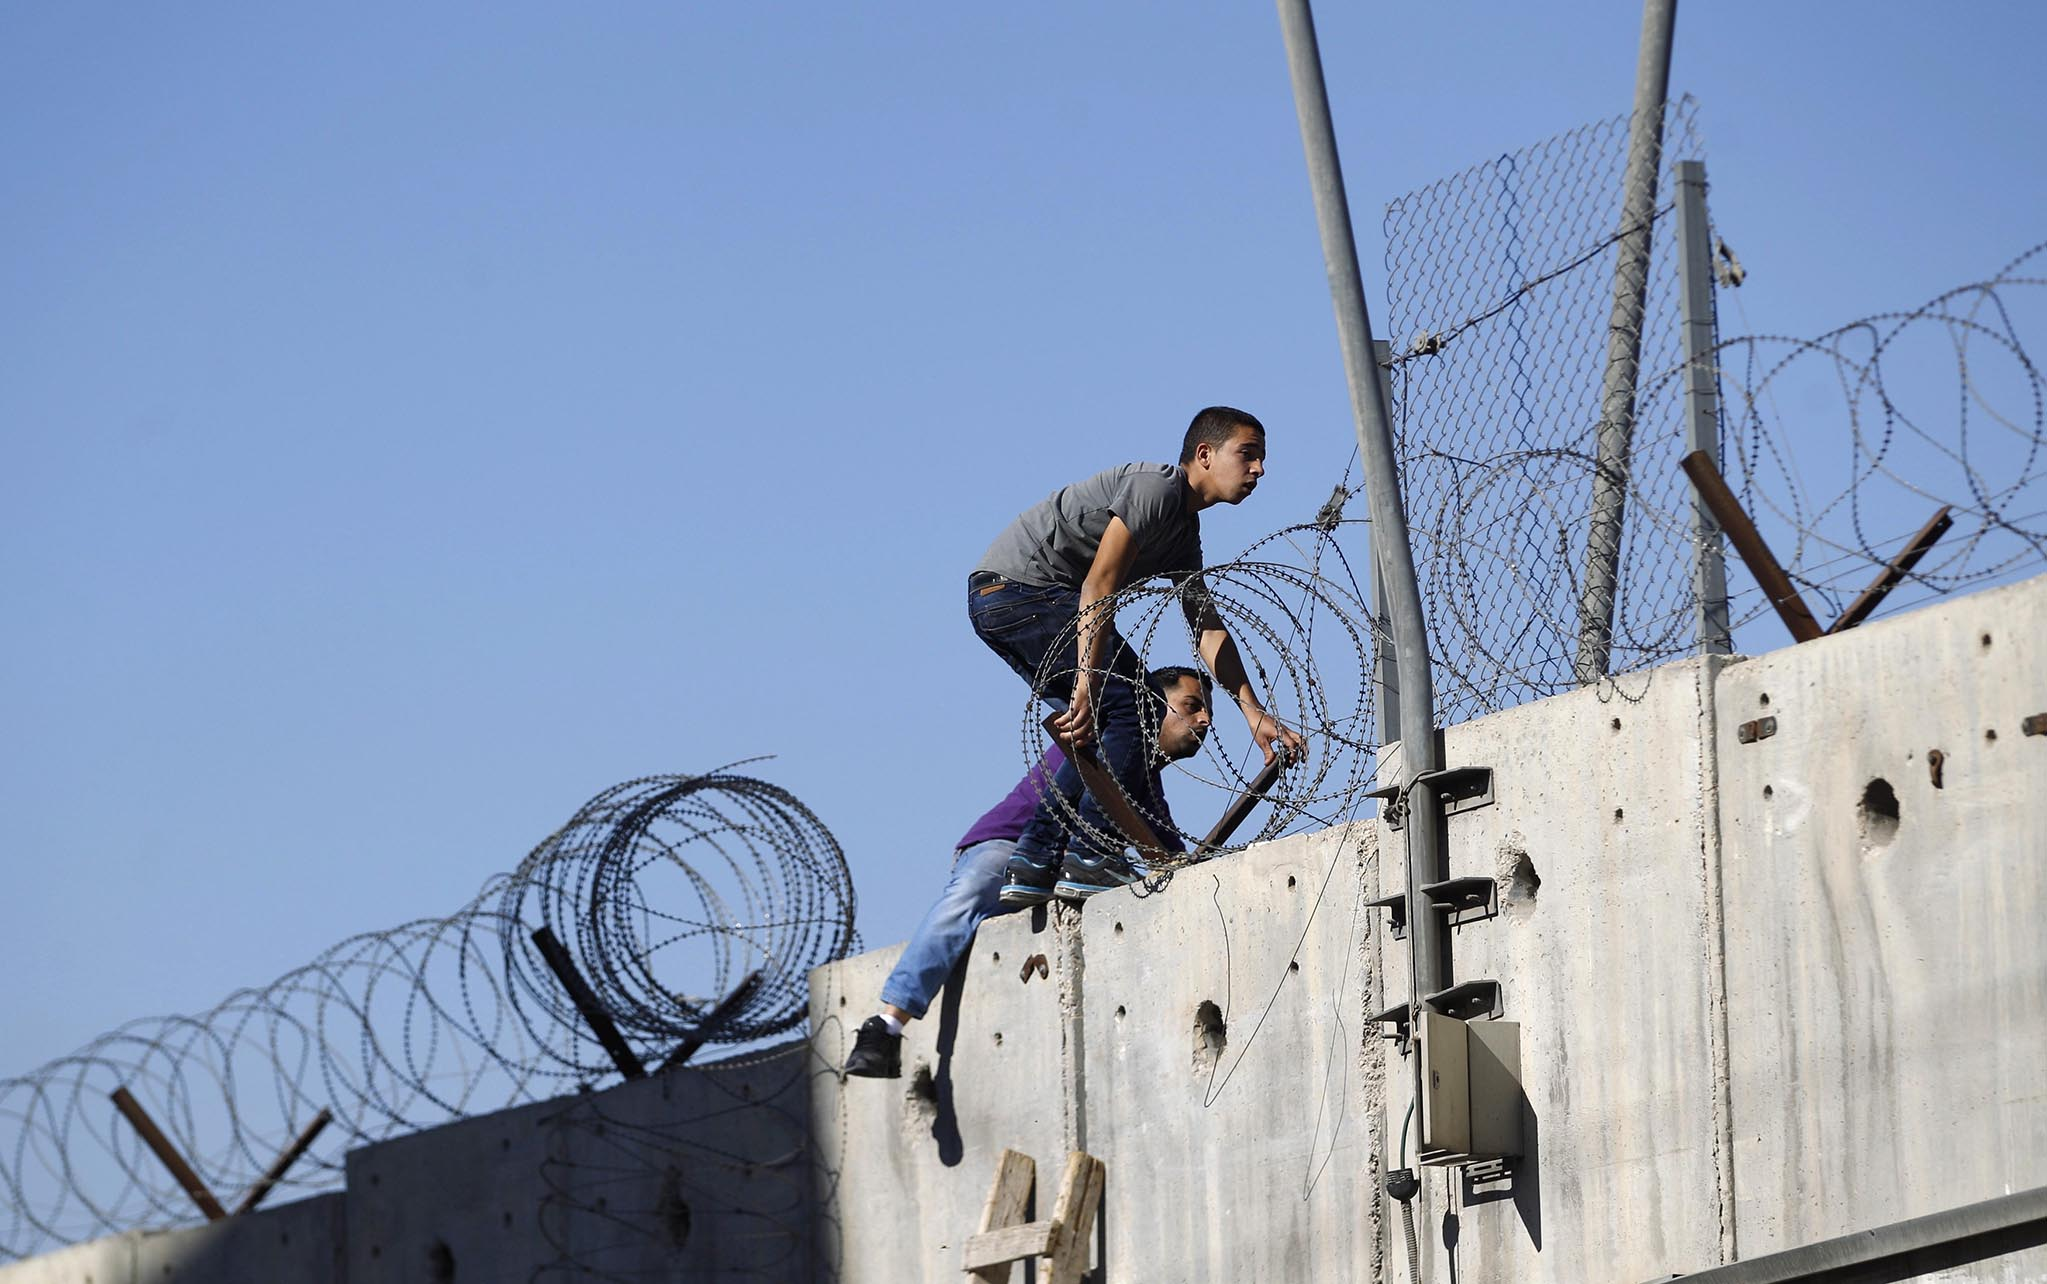 om the West Bank due to an age limit, climb over a section of the controversial Israeli barrier, in the village of Al-Ram